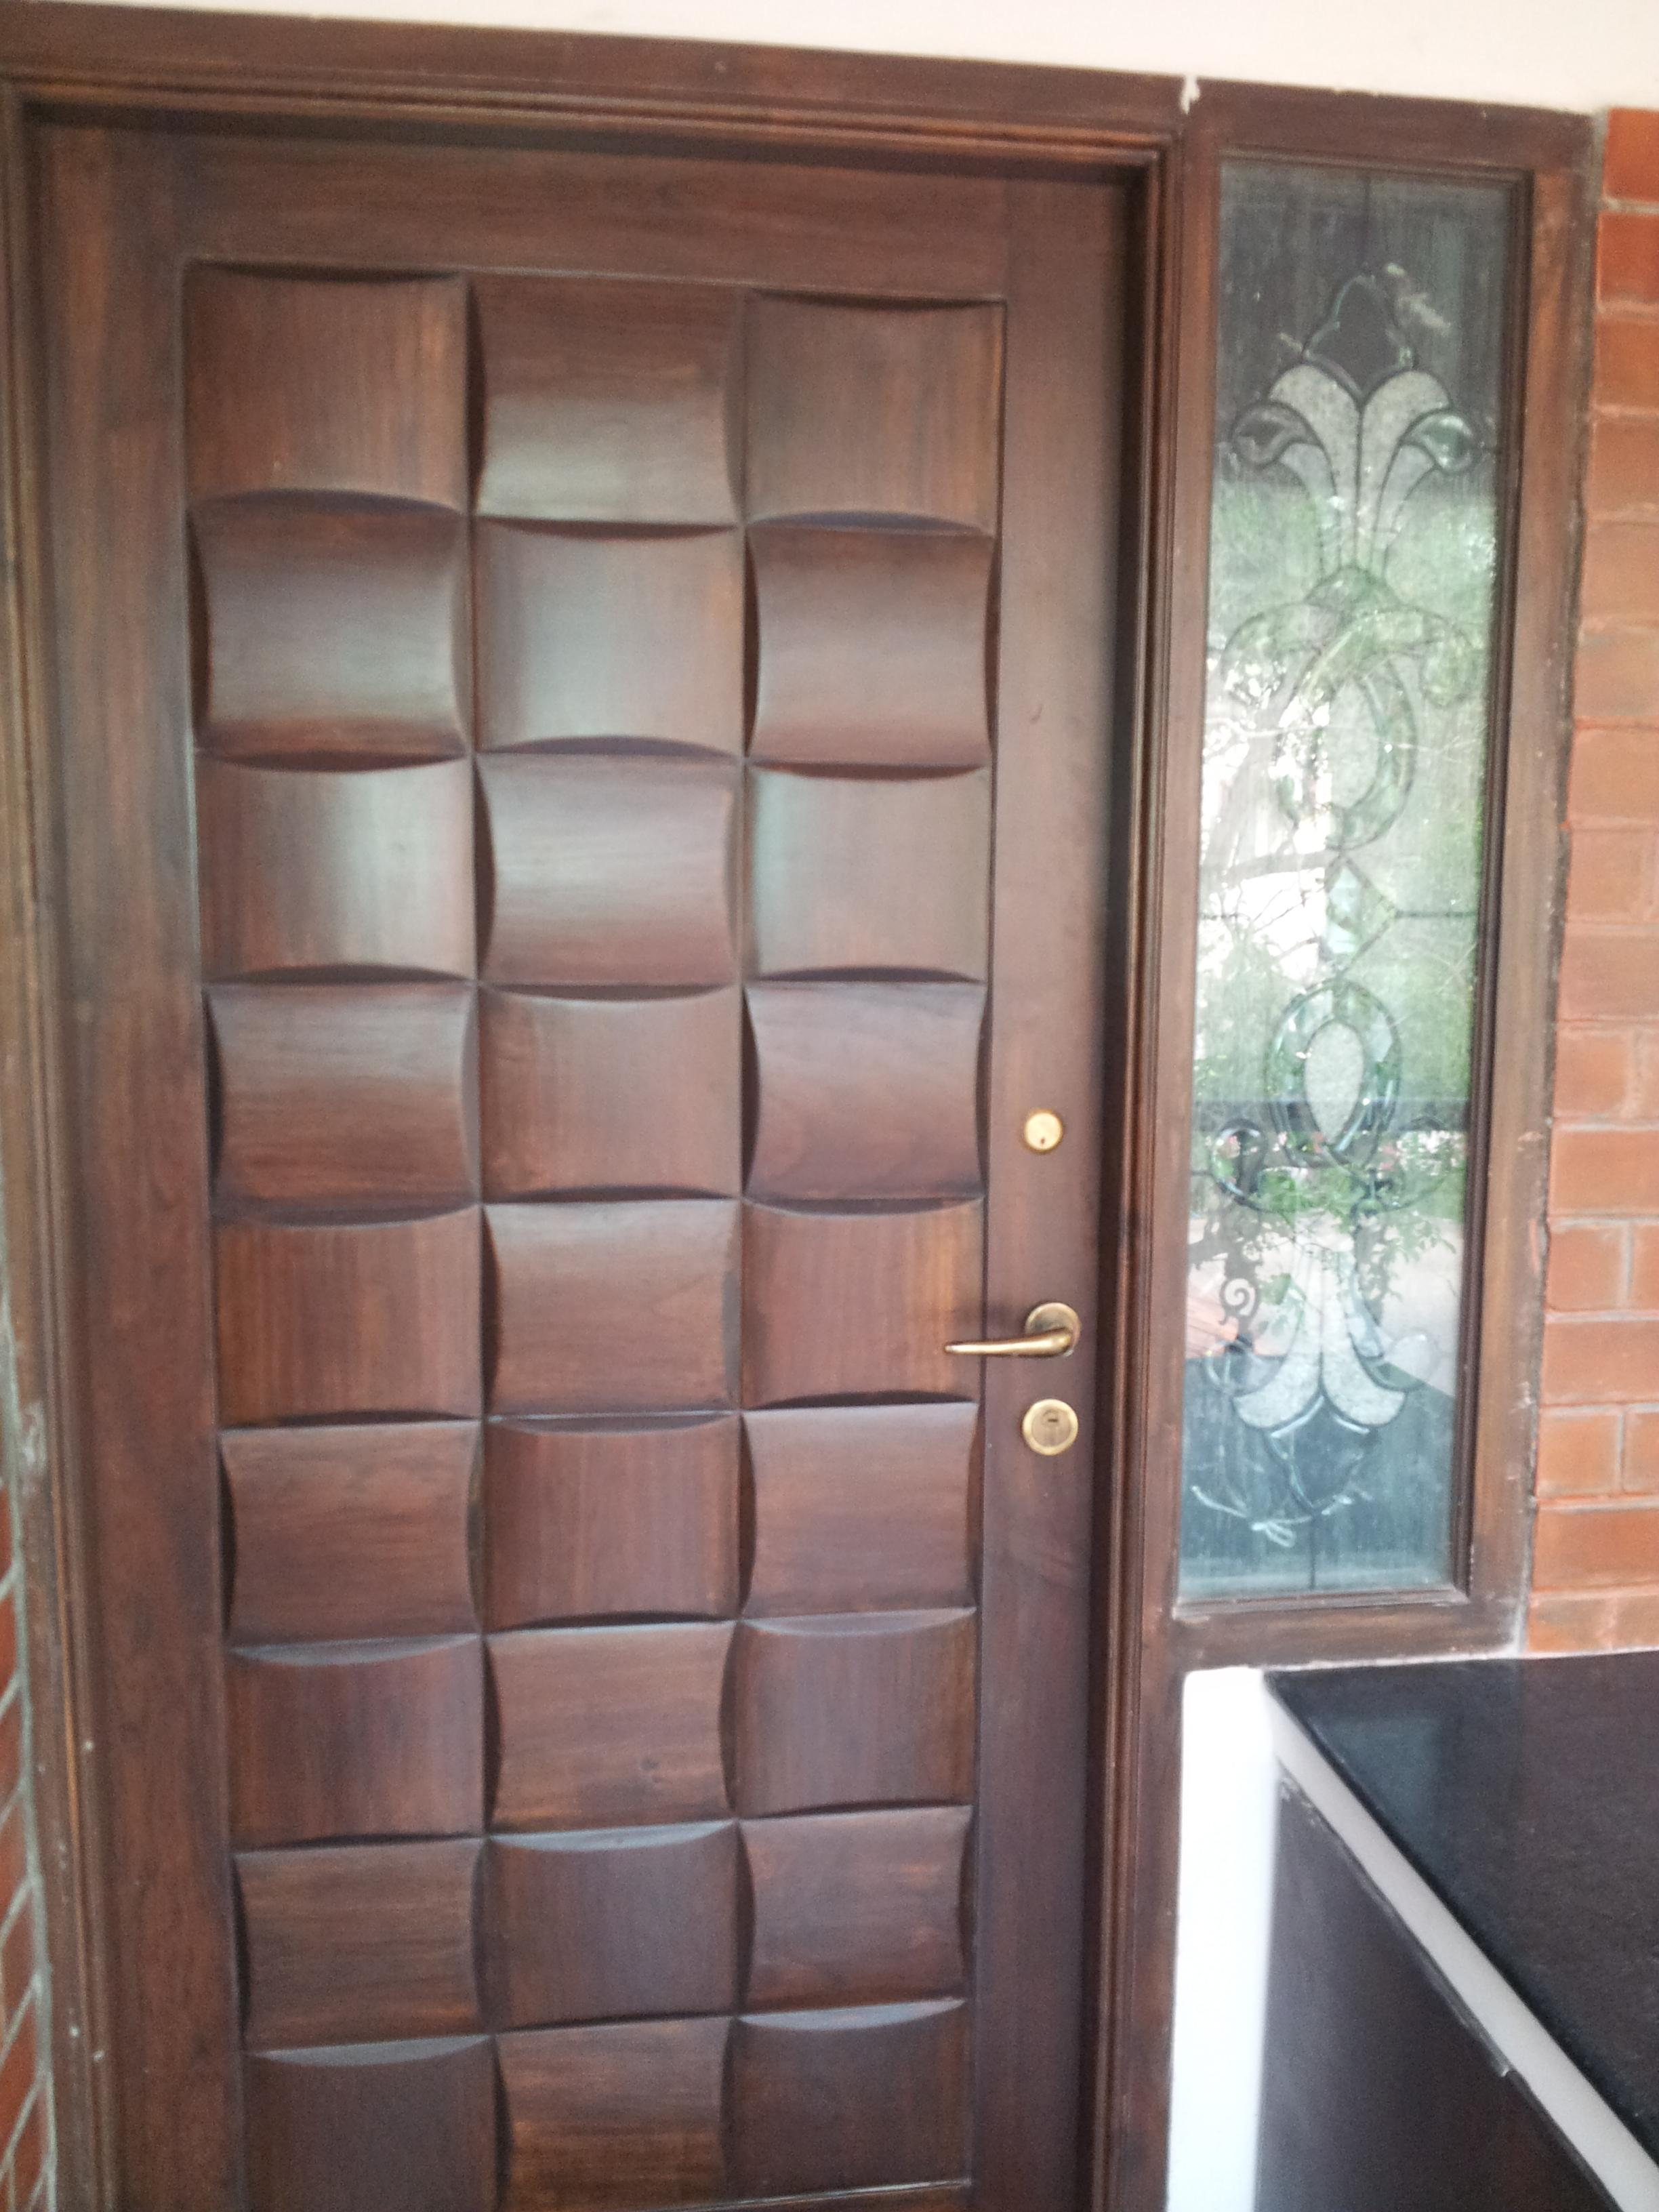 Main door design in wood very popular in 2013 gharexpert for Wood door design 2016